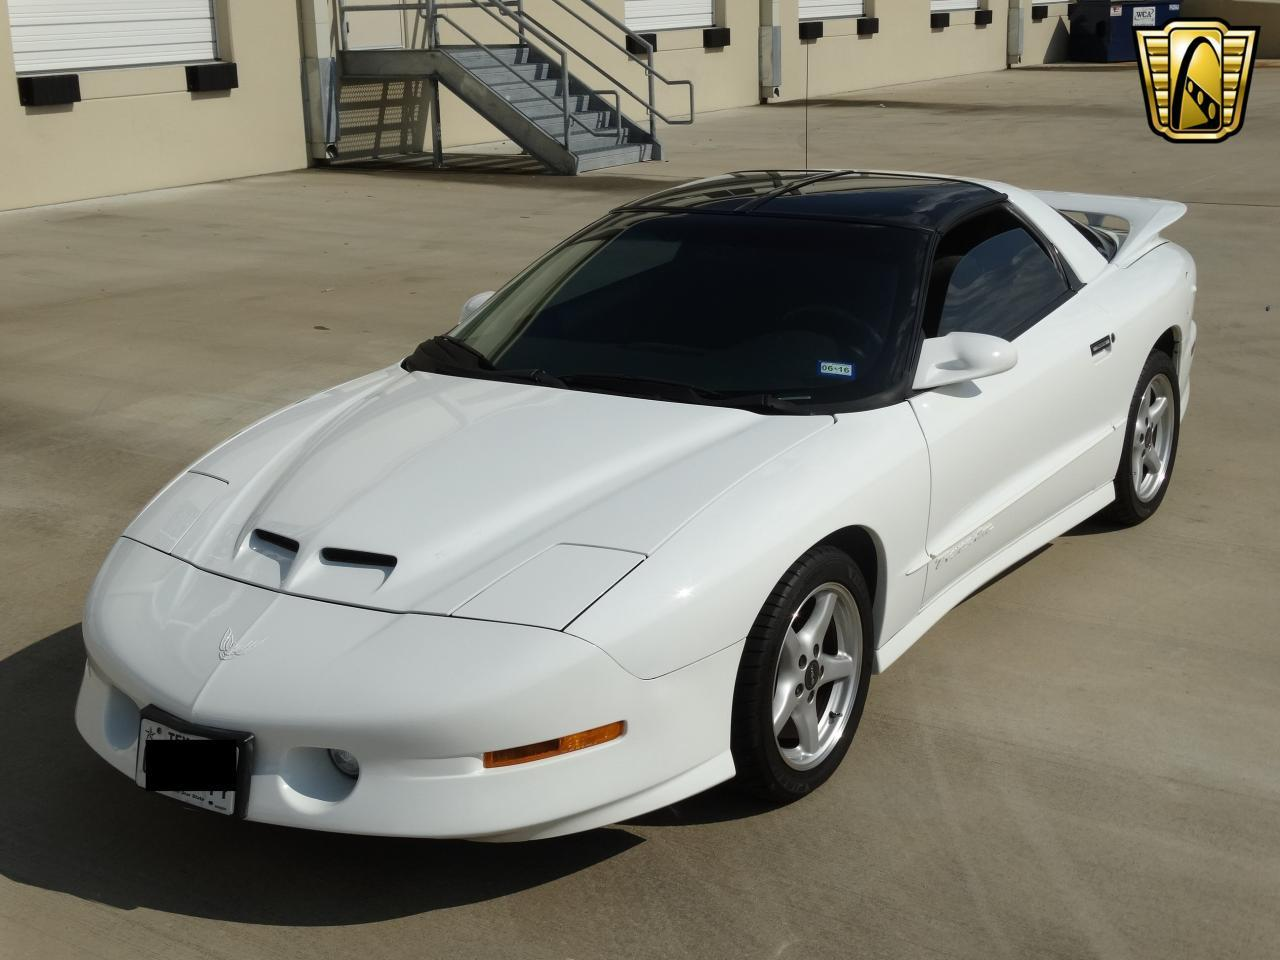 Large Picture of '96 Firebird Trans Am - $16,995.00 Offered by Gateway Classic Cars - Houston - KEI4